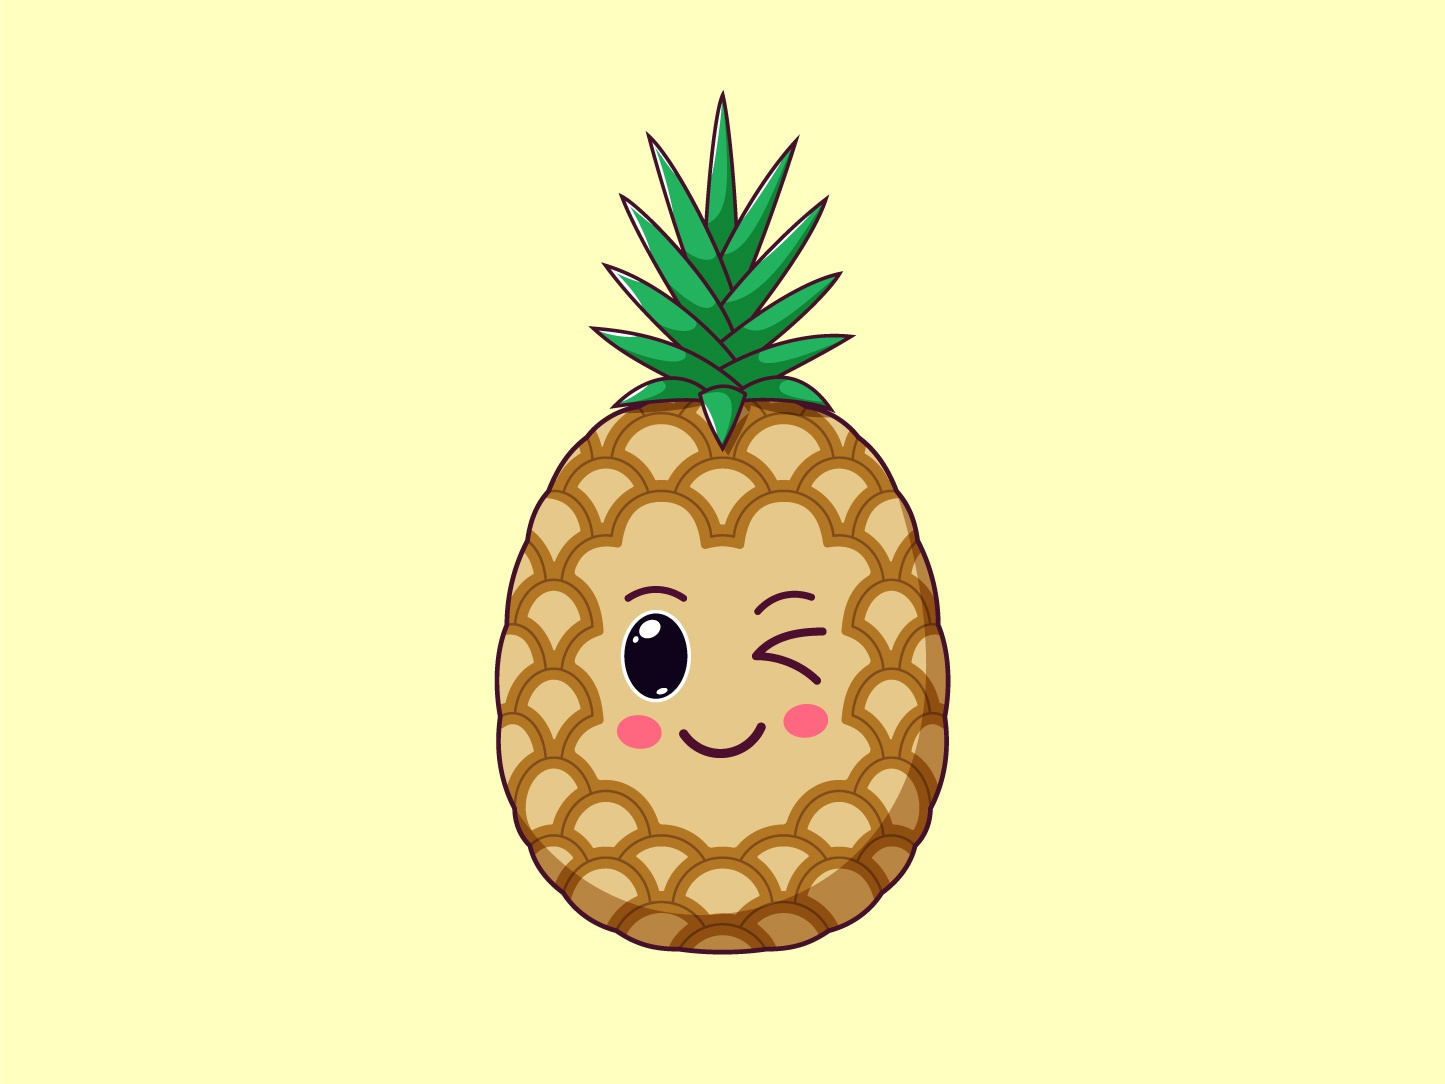 Cute Kawaii Pineapple, Cartoon Tropical Fruit tropical vector pineapple sticker smile kawaii illustration fruit emoji cute cartoon